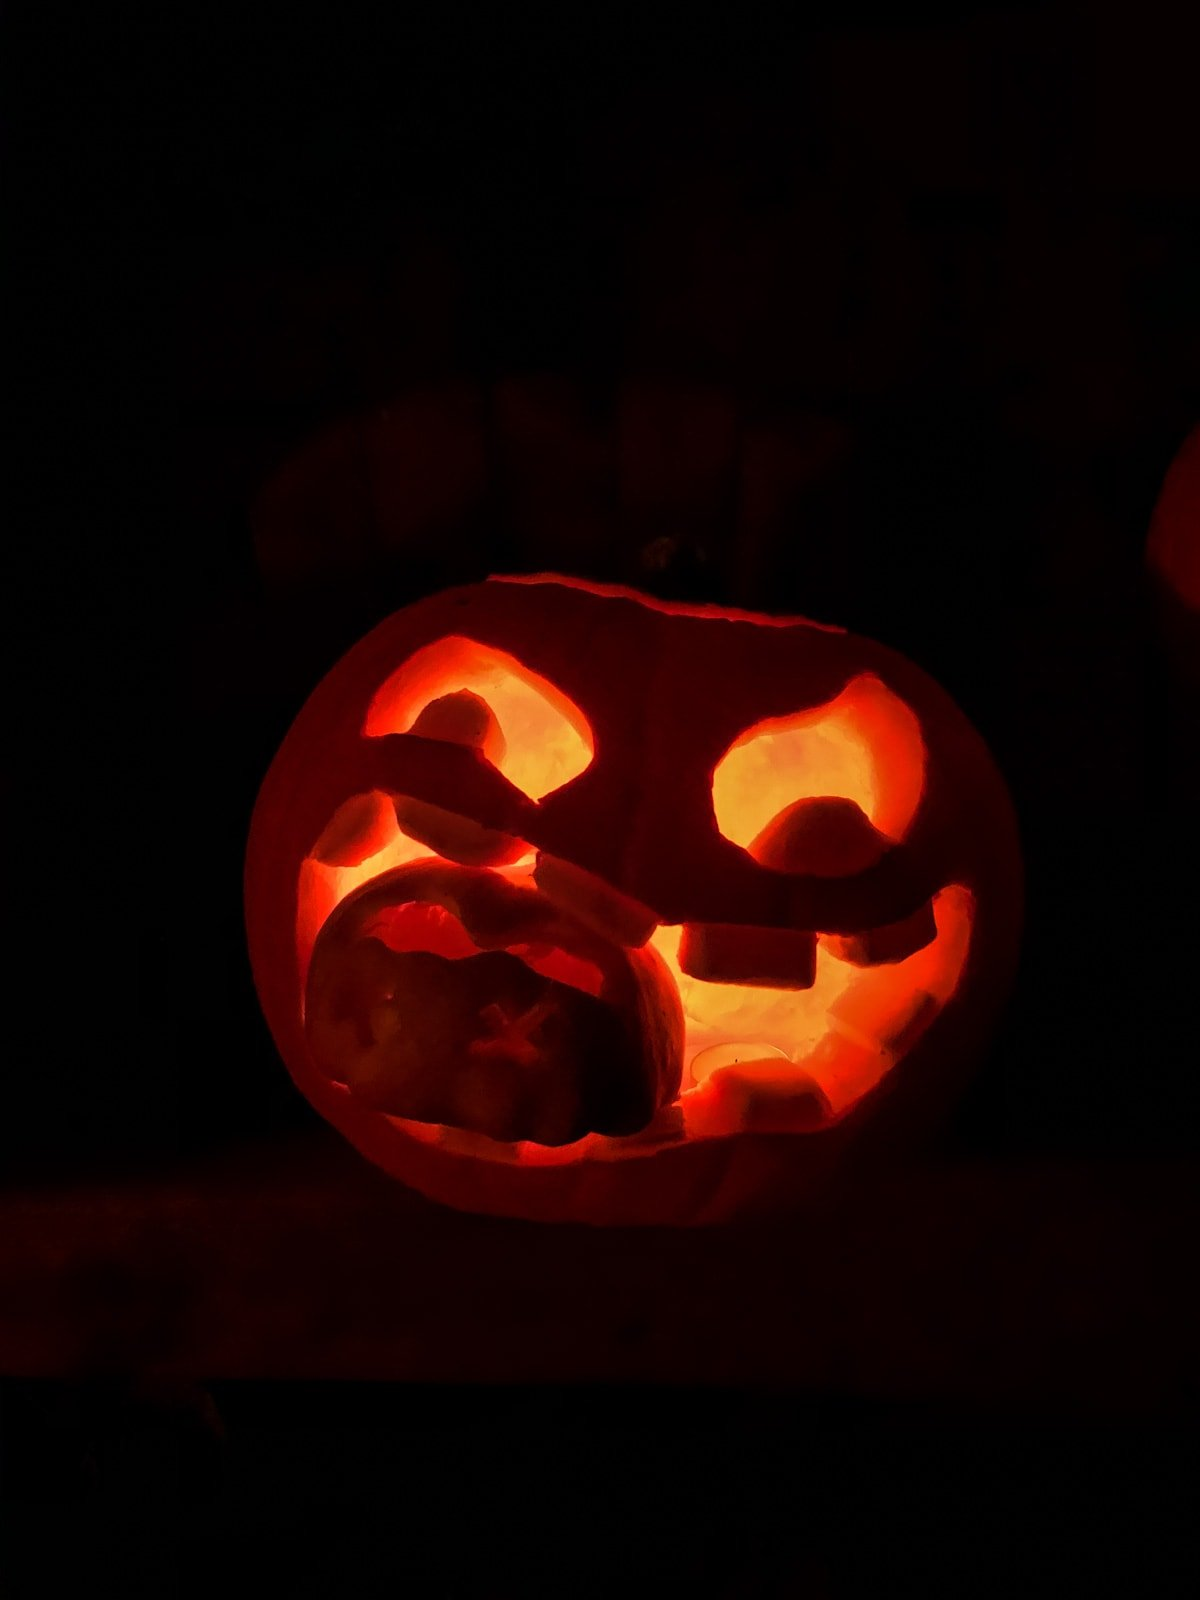 a pumpkin carving with a large wide mouth. in the mouth is a small carved pumpkin. it is lit up orange in a dark black night